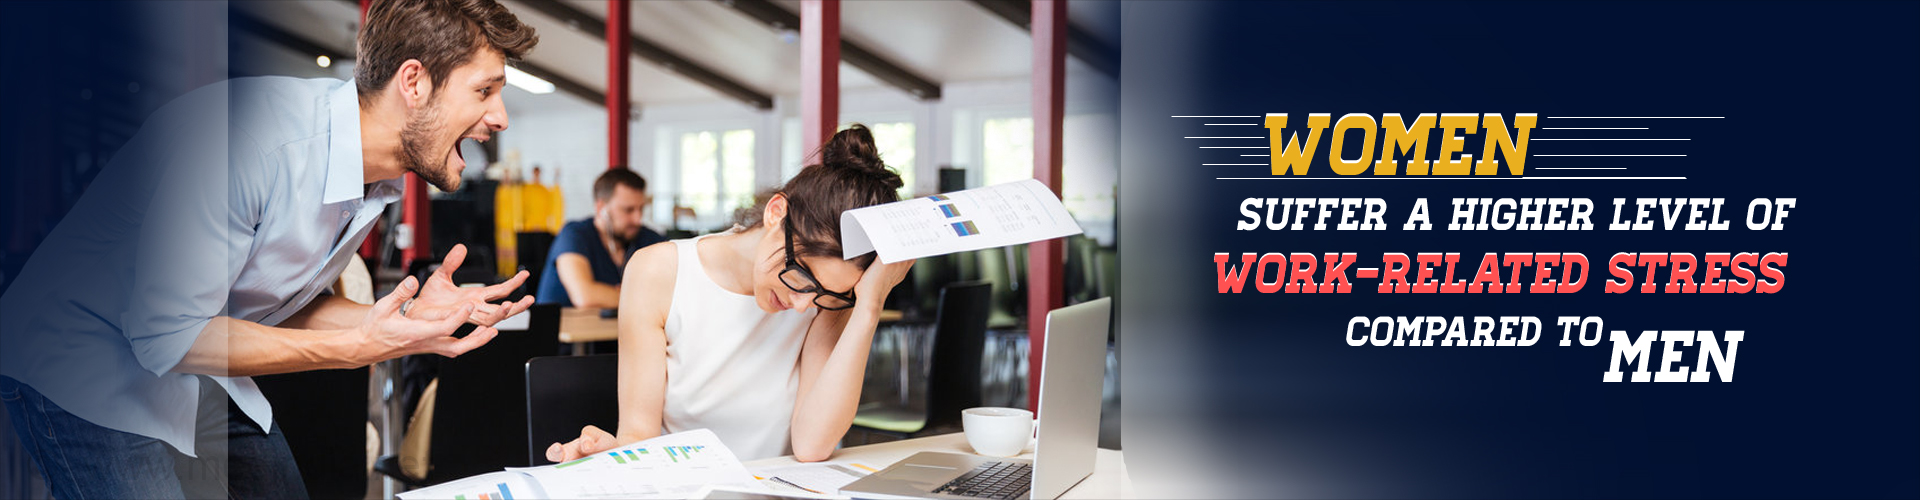 Women suffer higher level of work-related stress compared to men